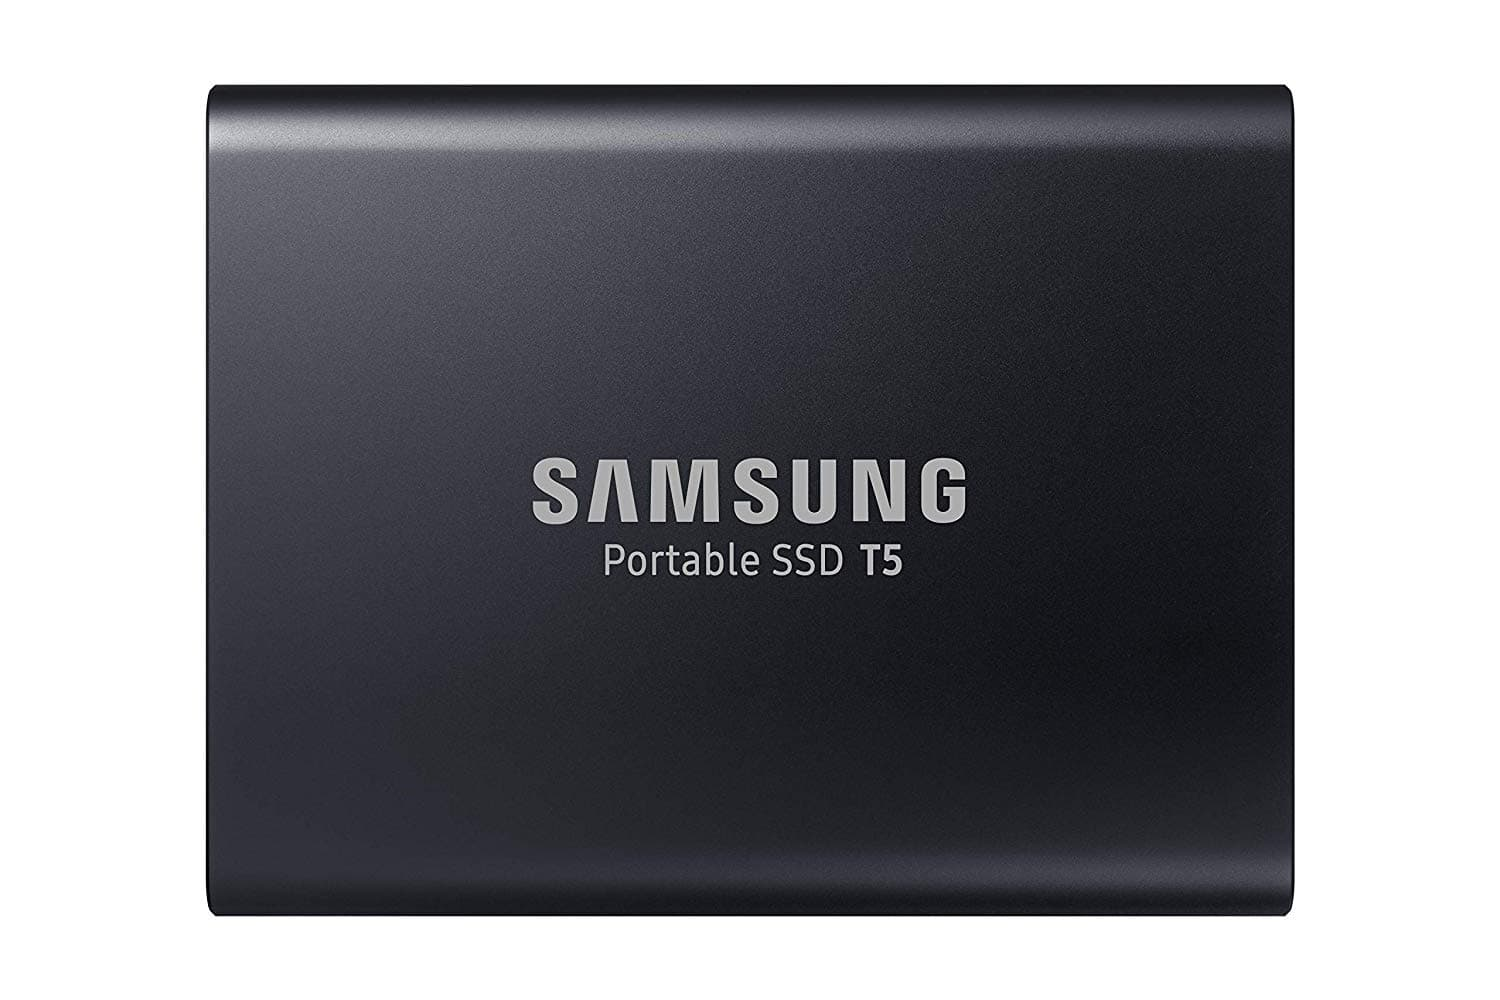 Samsung T5 2TB Portable External Hard Drive @ Newegg for $297.99 + Free Shipping + No Sales Tax (until July 1 for select states)